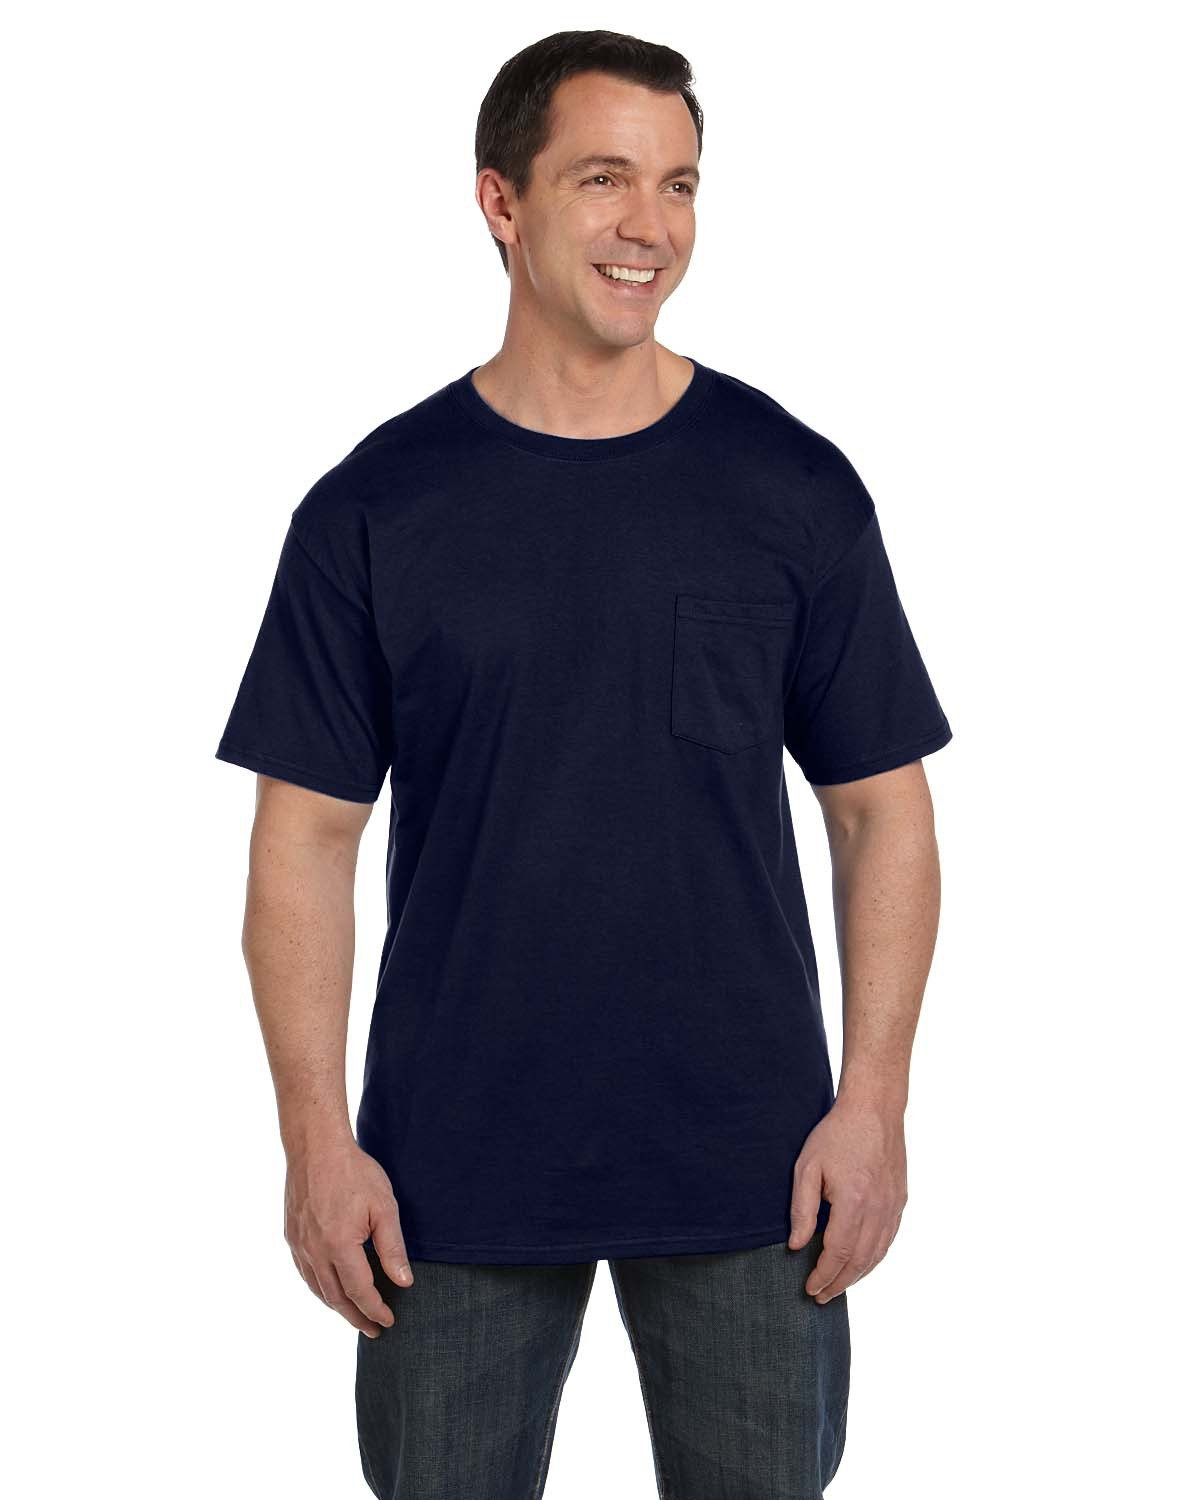 Hanes Adult Beefy-T® with Pocket NAVY